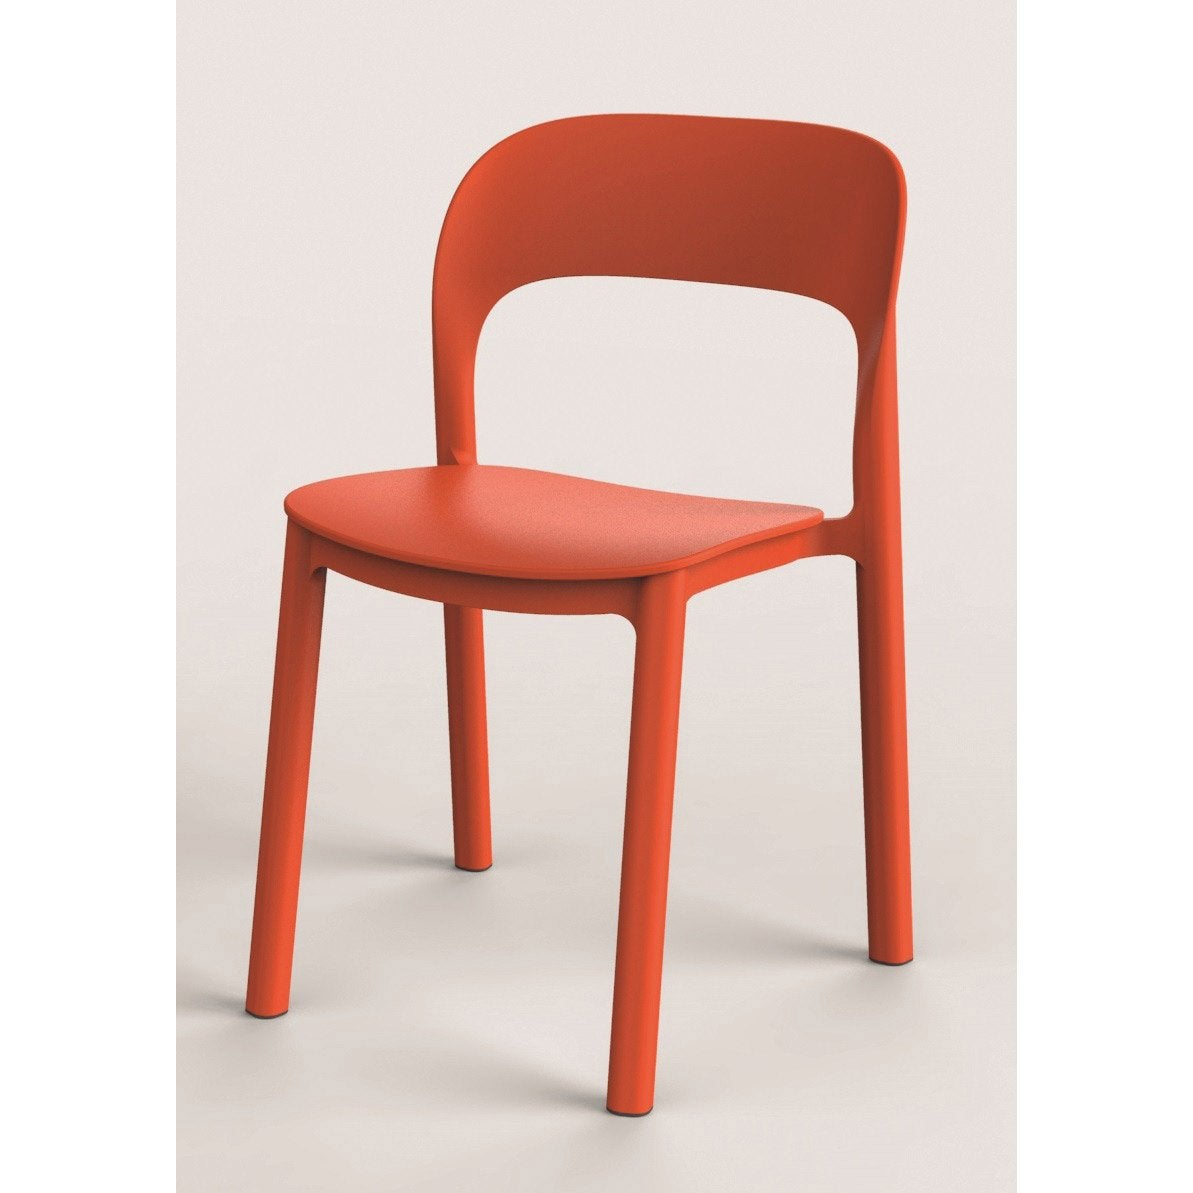 Chaise de jardin en r sine inject e ona orange leroy merlin for Ocultacion jardin leroy merlin